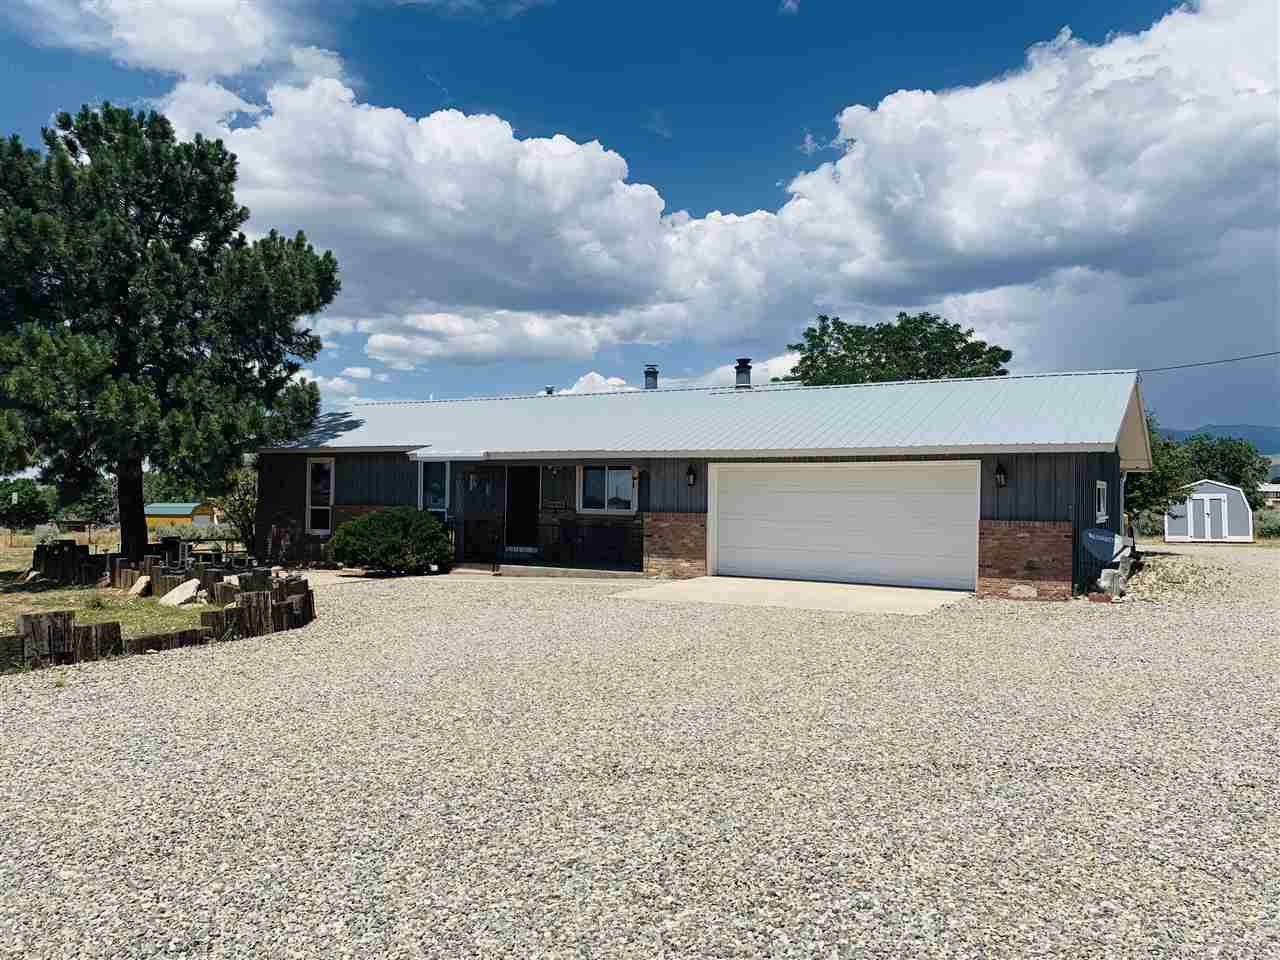 205 Estes Es Road, Taos, NM 87571